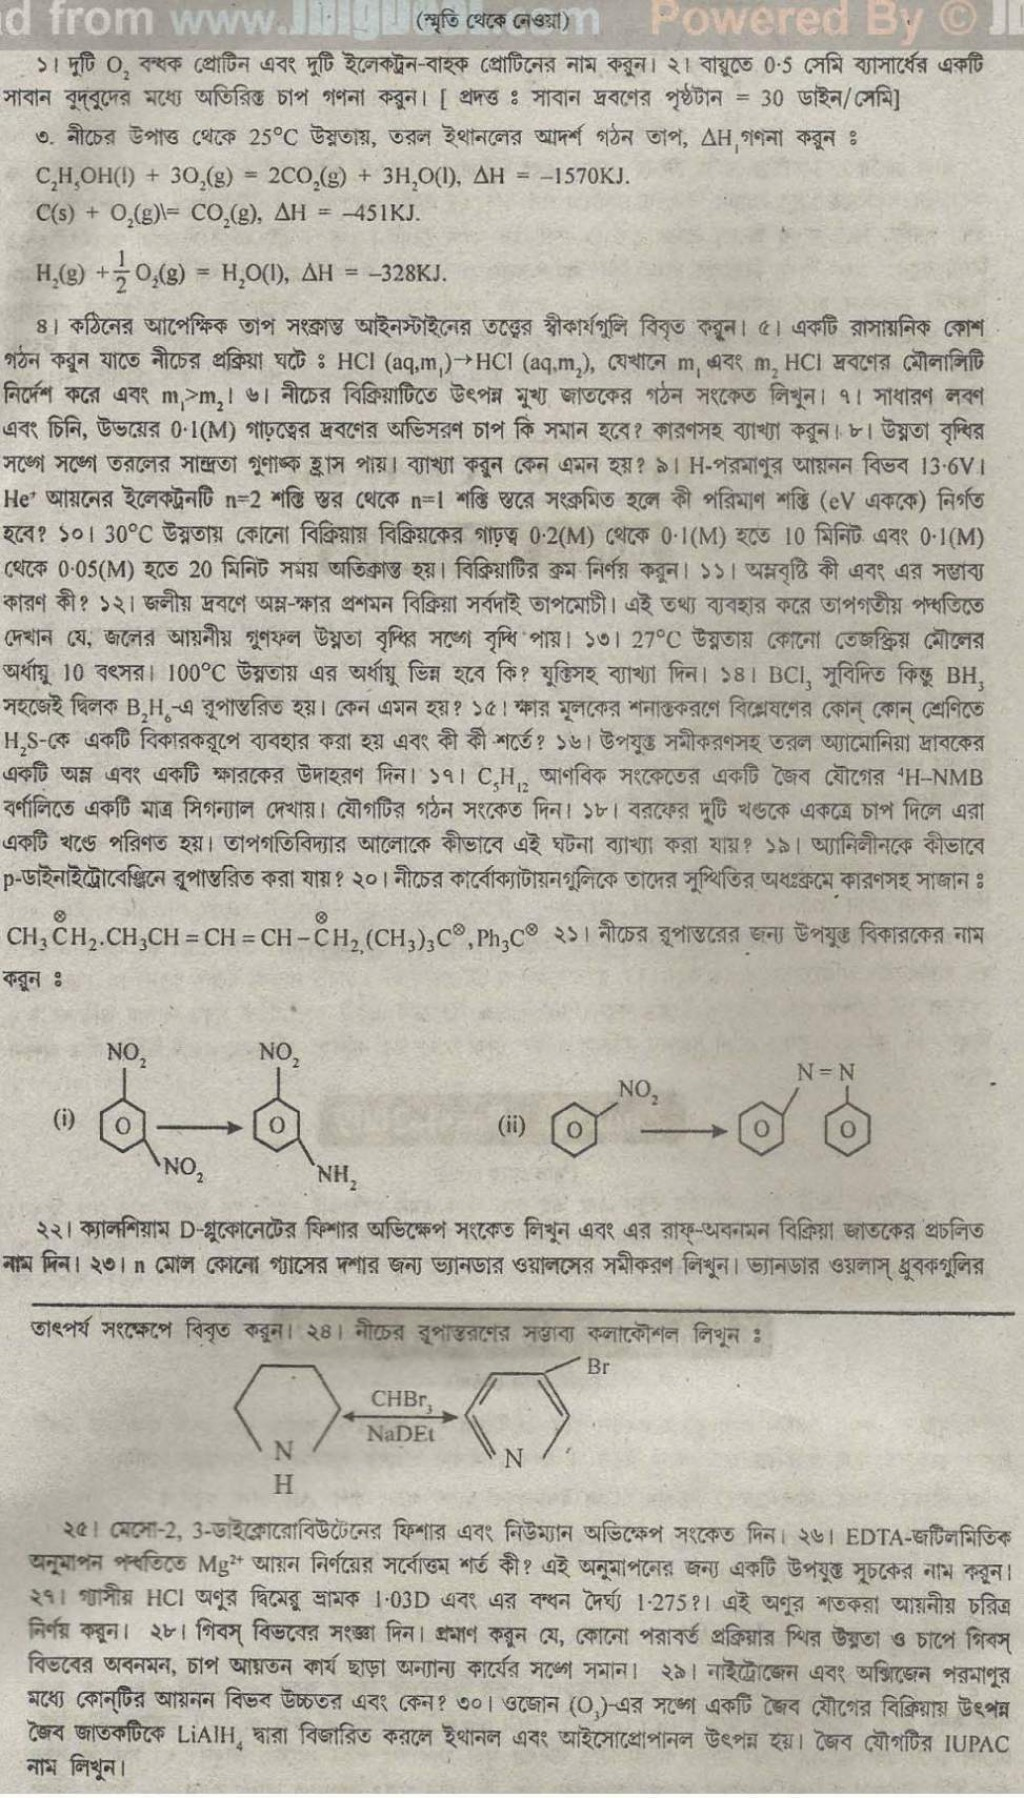 018 Essay Example West Bengal School Service Commission Last Year Question Papers Of Chemistry Pope On Unique Criticism Part 2 Pope's Was Written In Large